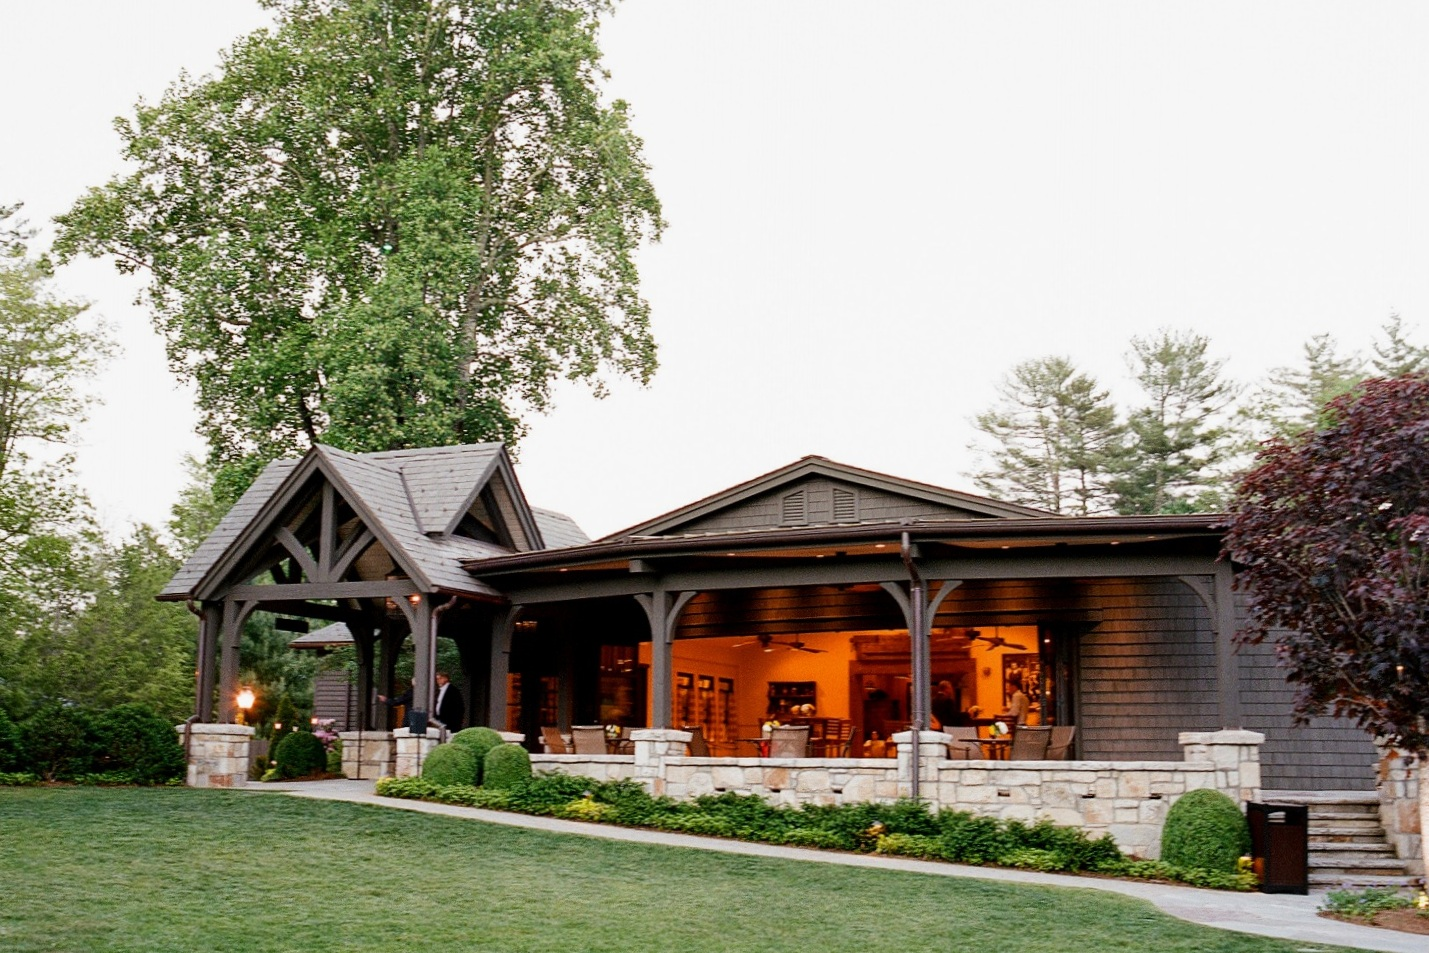 THE SPRINGHOUSE - Old Edwards Inn and Spa